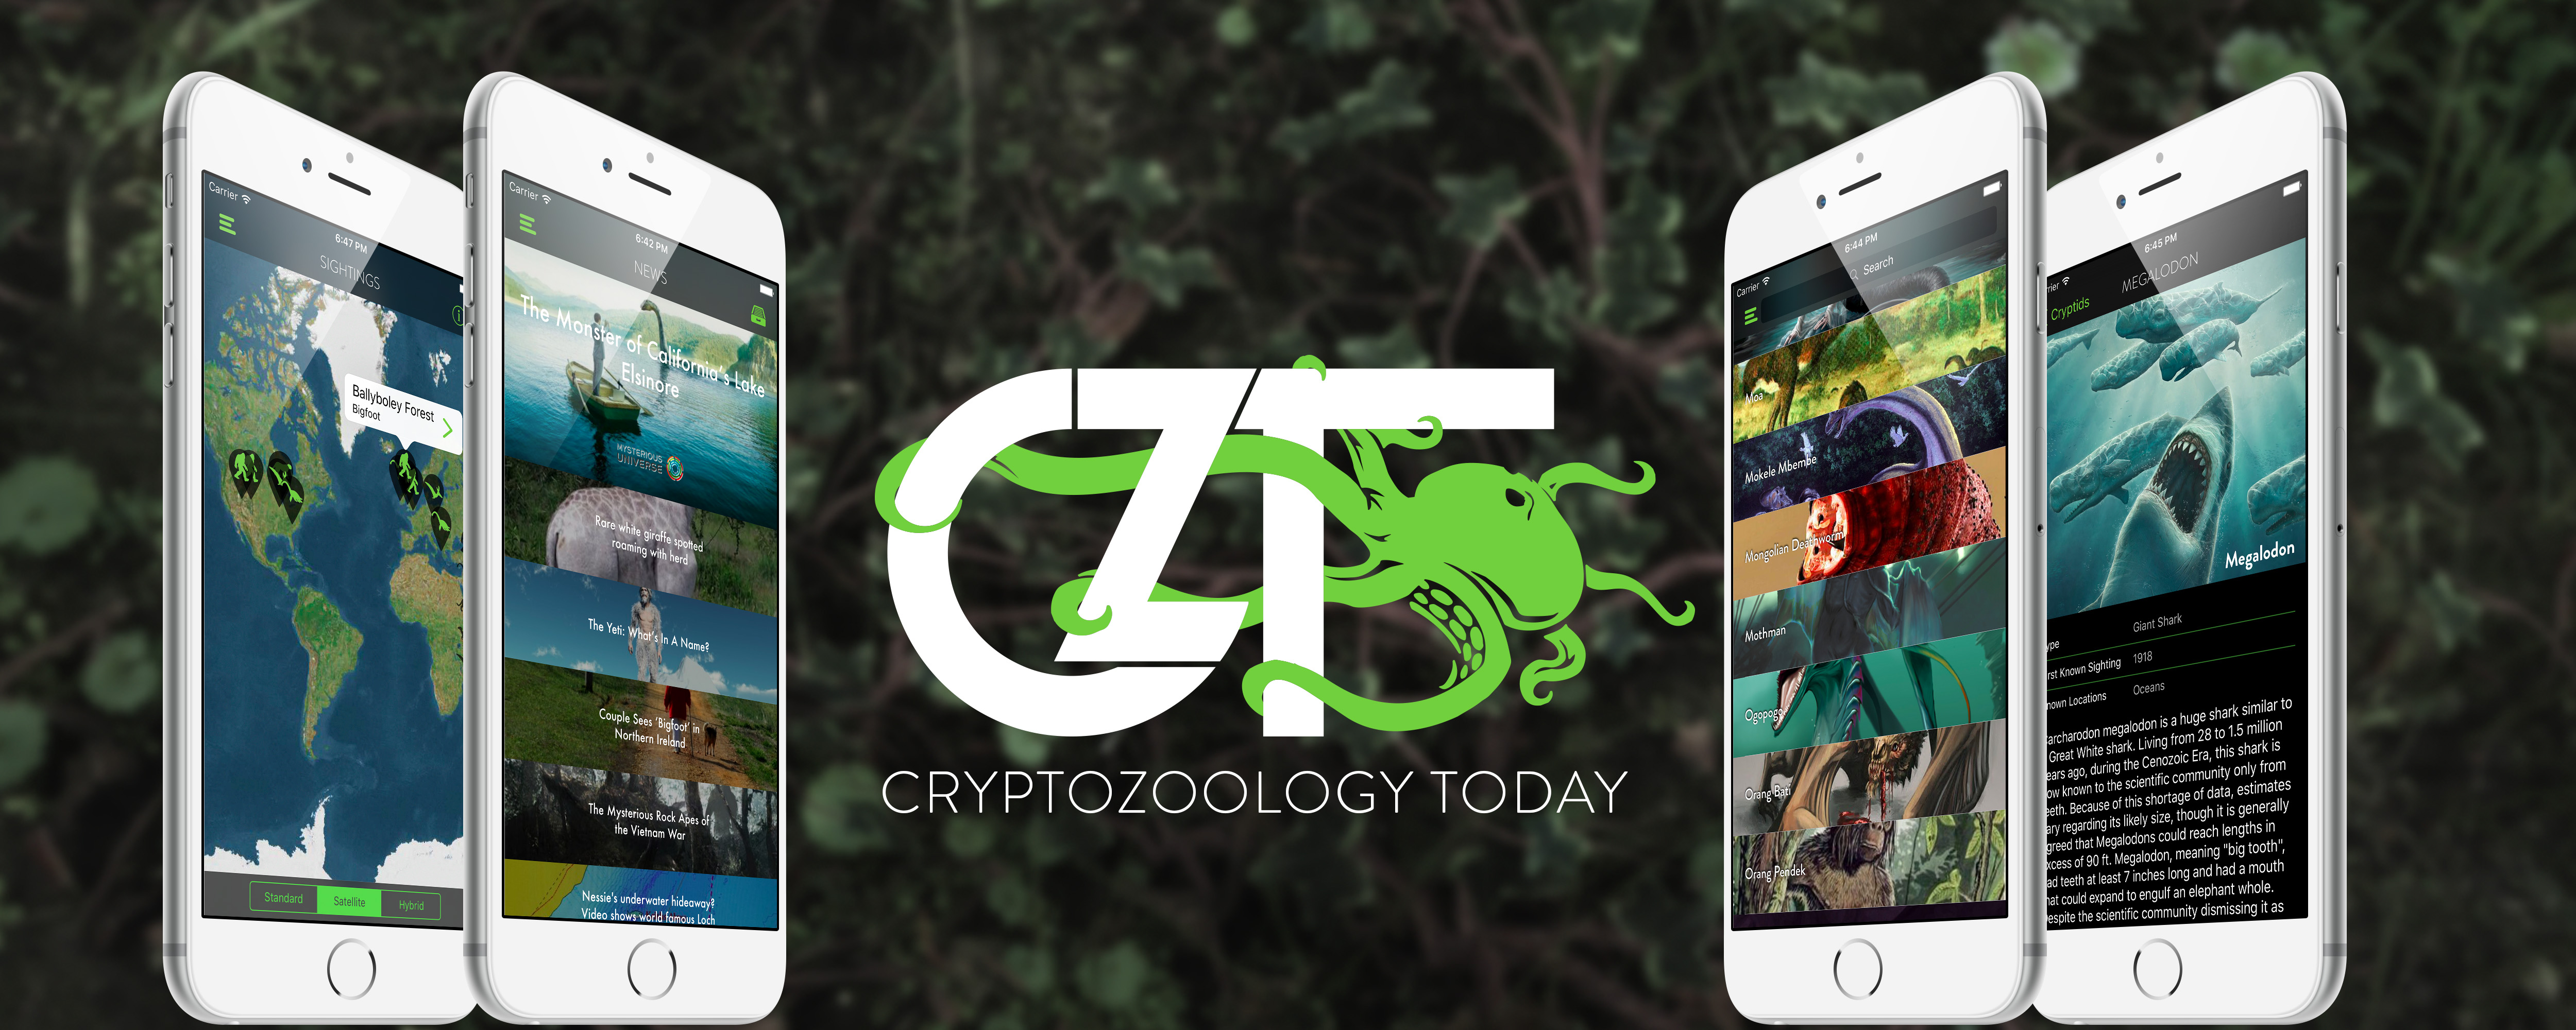 Cryptozoology Today